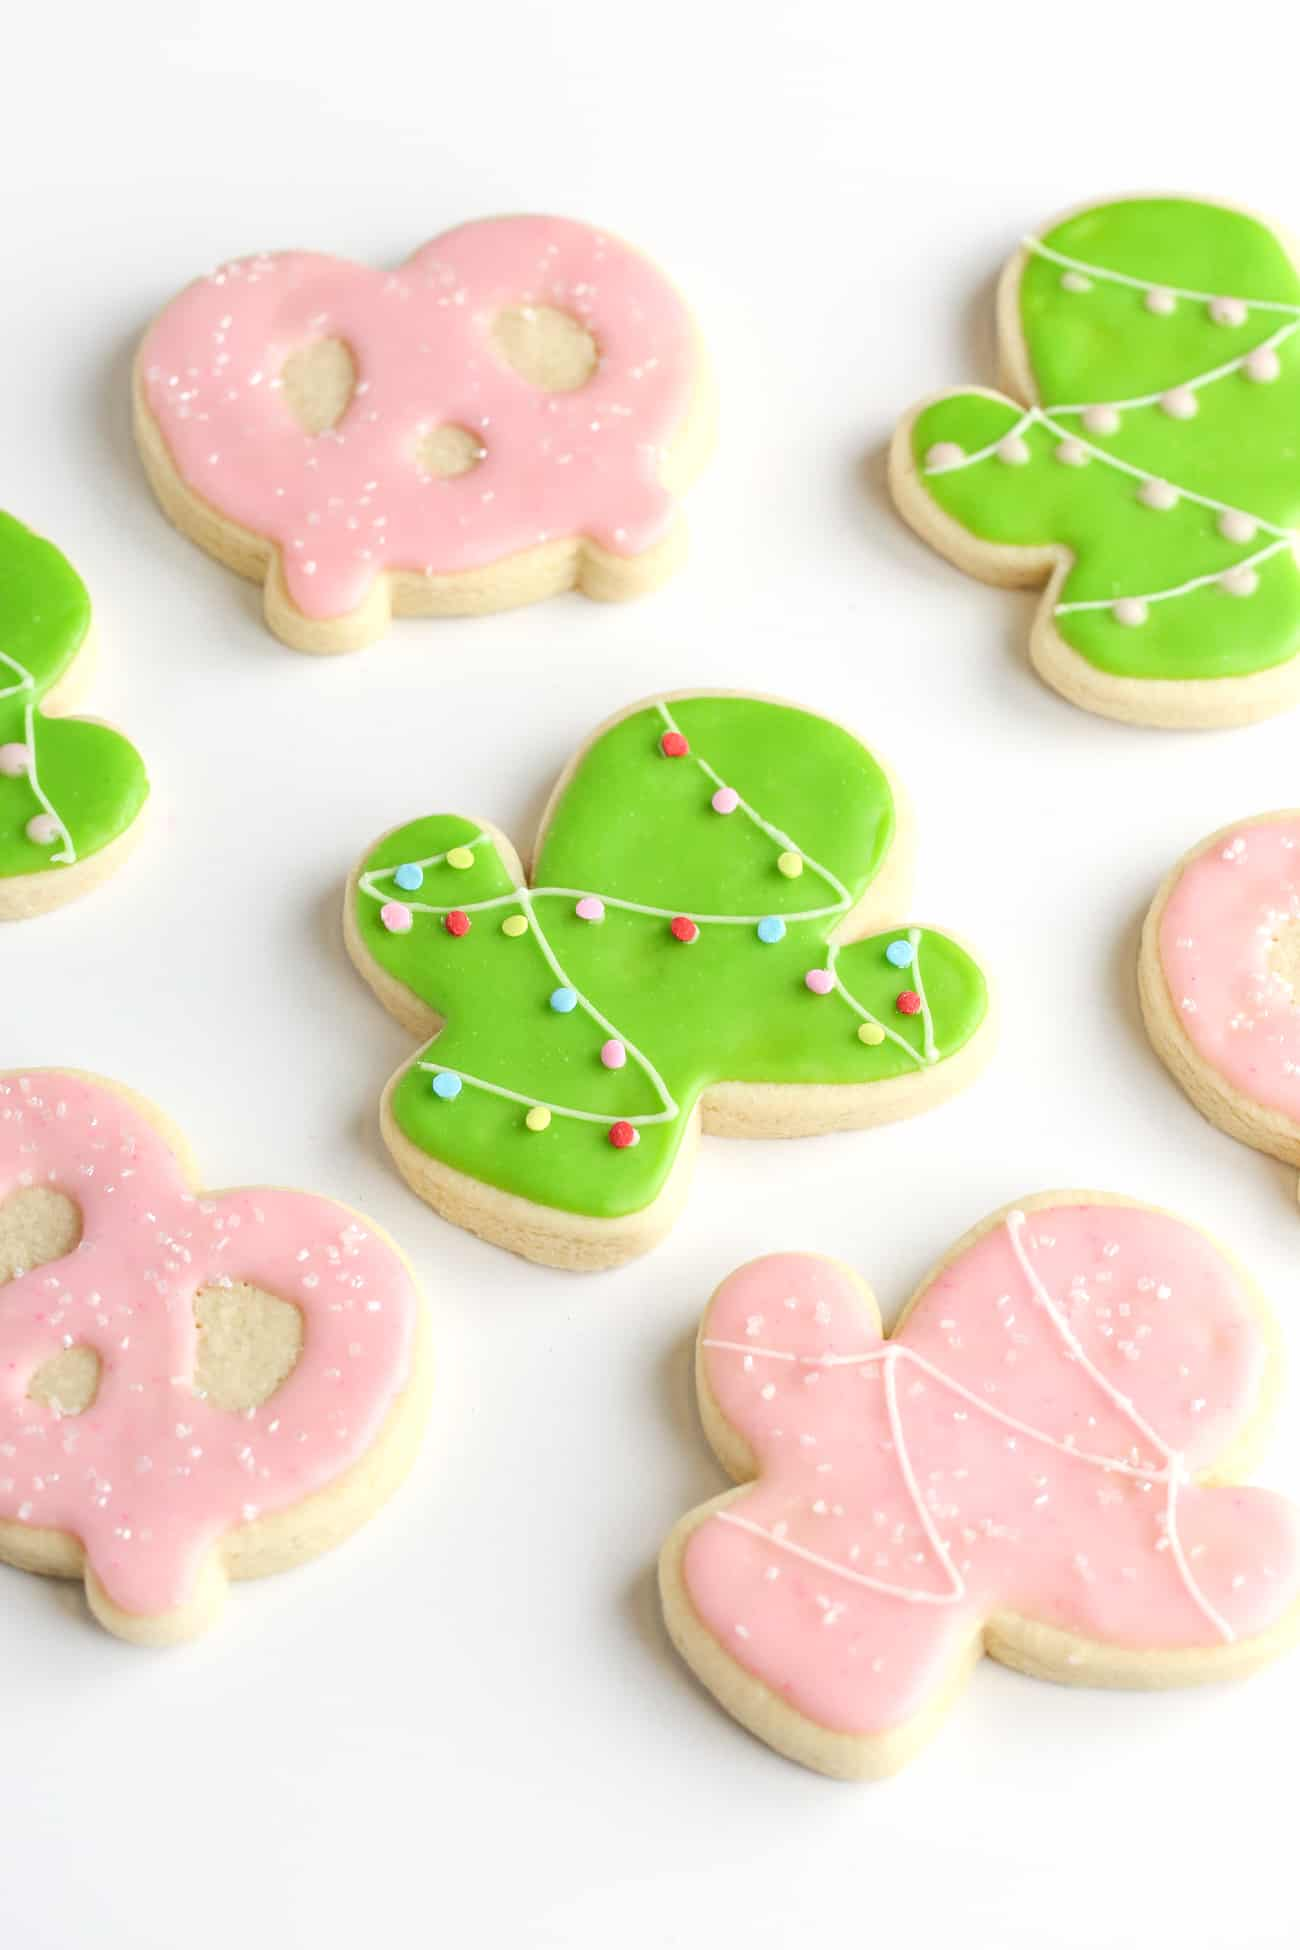 Christmas cactus green sugar cookies, pink cactus sugar cookies, and pink pretzel sugar cookies.